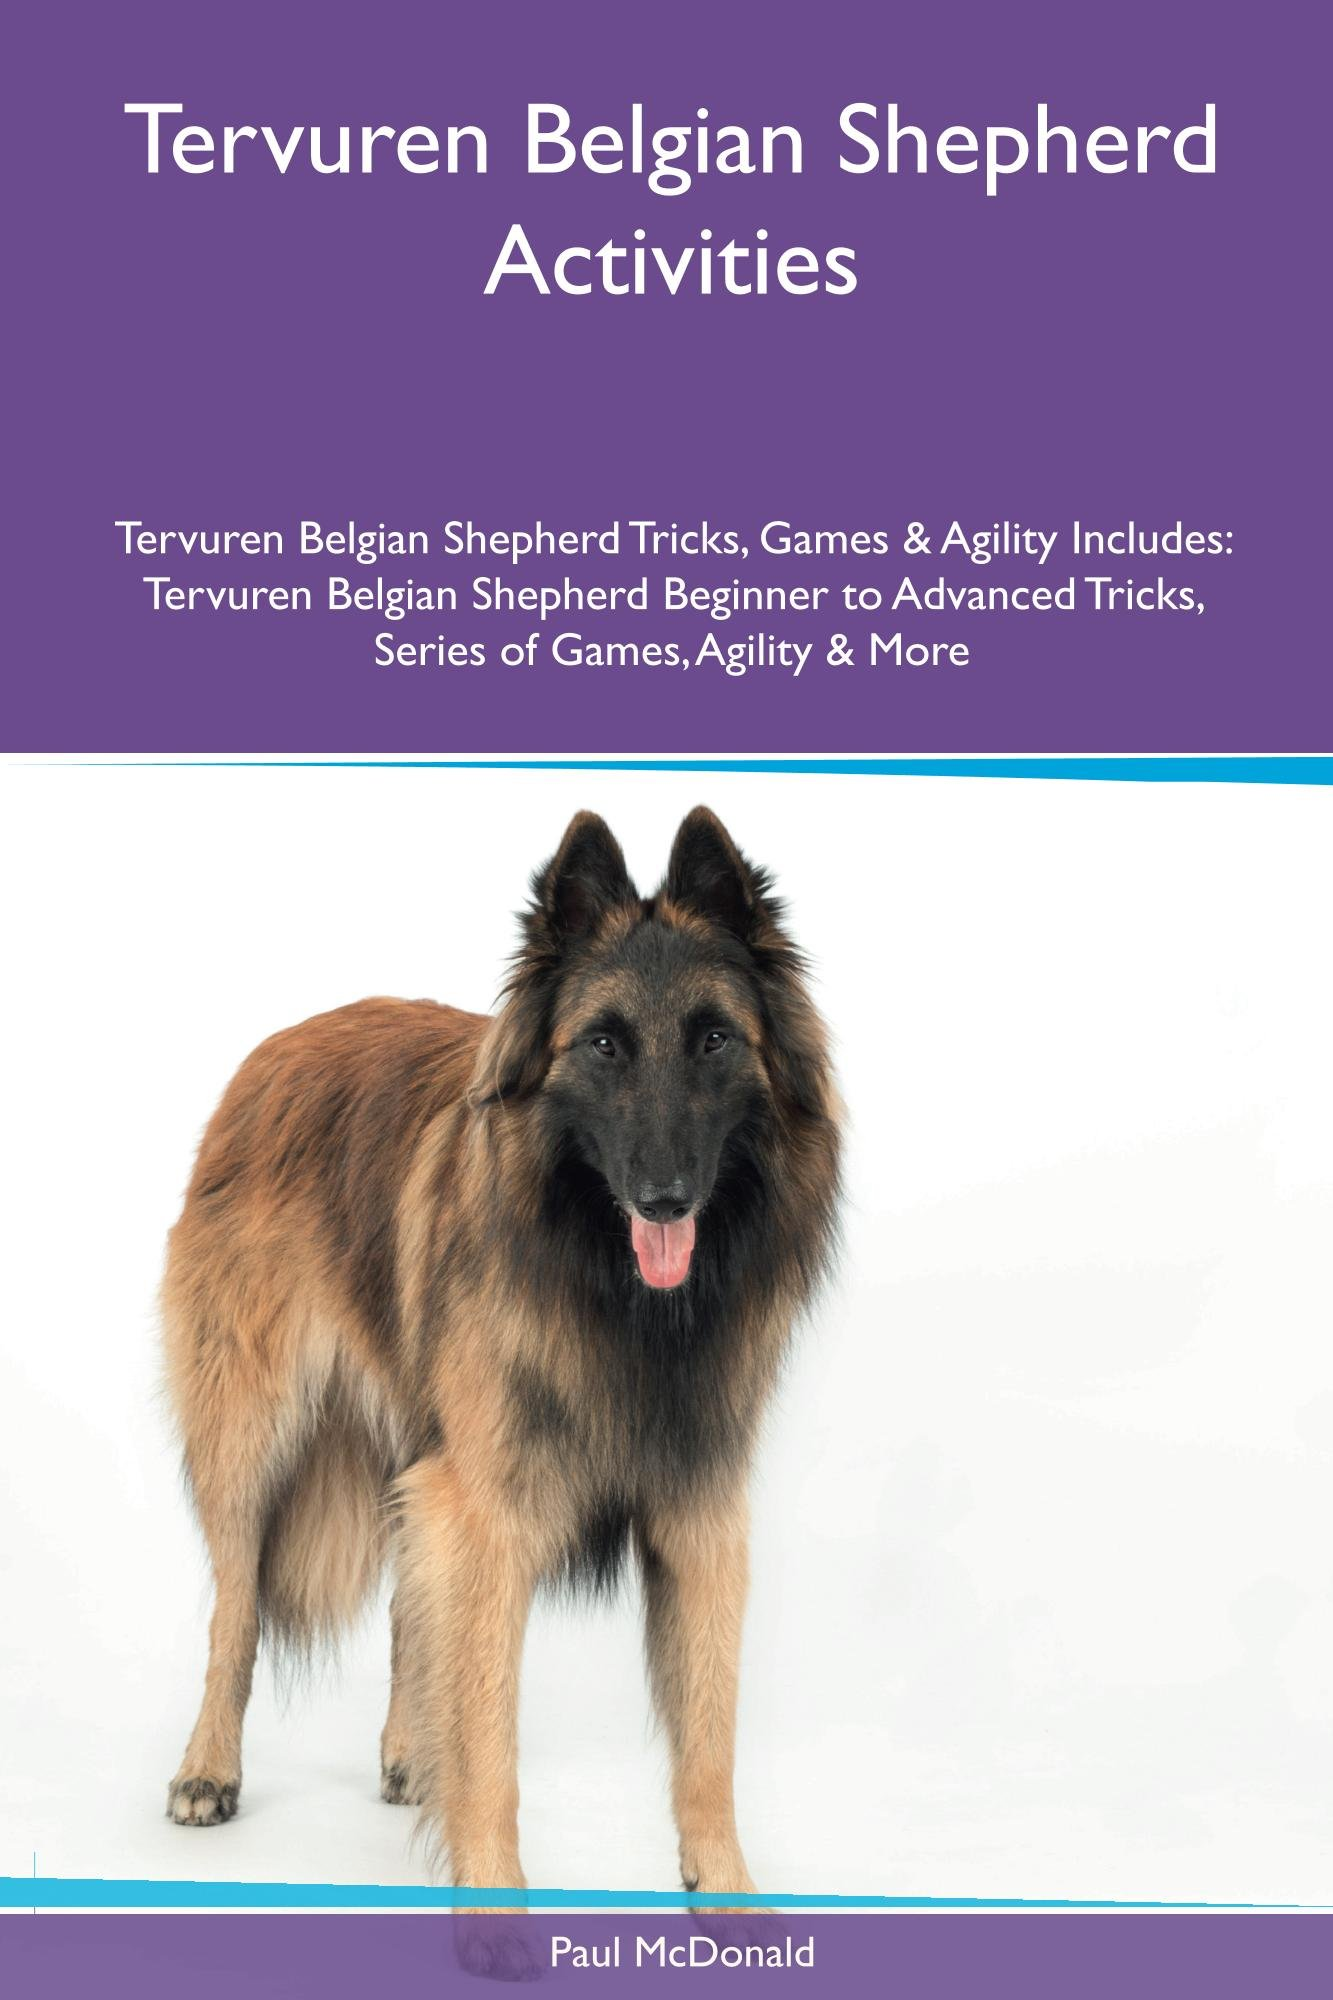 Tervuren Belgian Shepherd Activities Tervuren Belgian Shepherd Tricks, Games & Agility. Includes: Tervuren Belgian Shepherd Beginner to Advanced Tricks, Series of Games, Agility and More